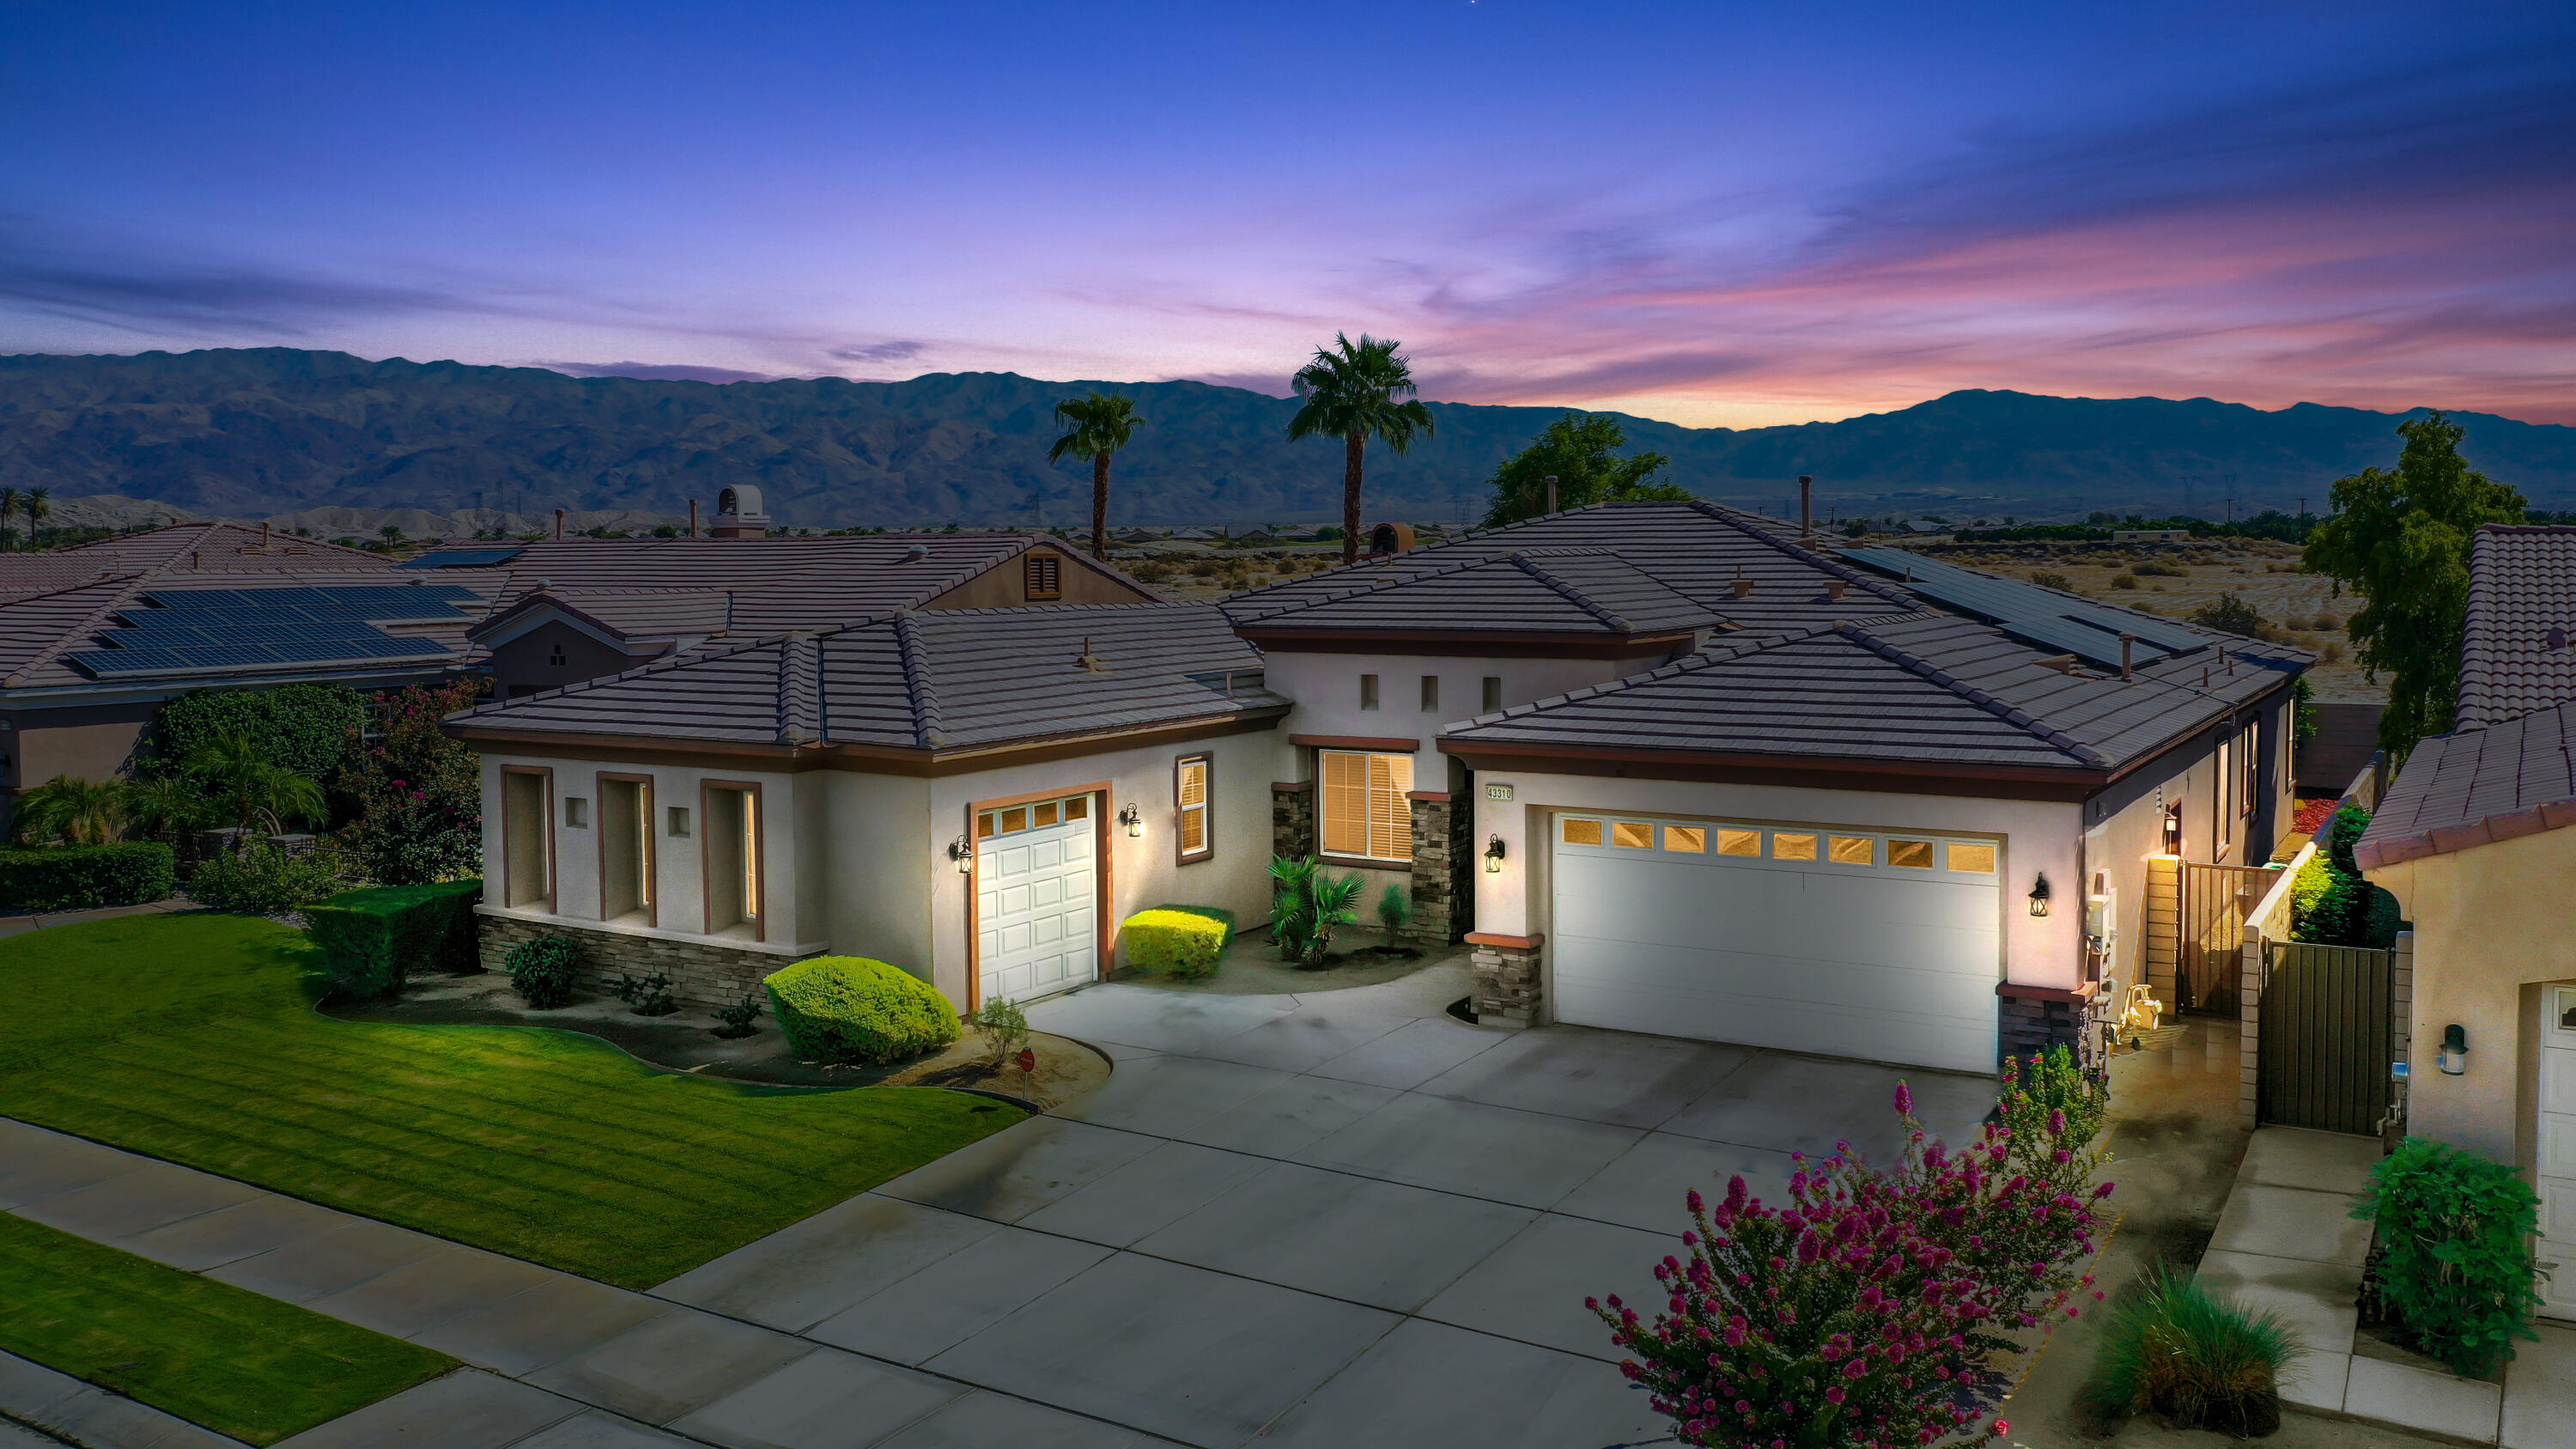 Located in the scenic guard gated community of Terra Lago is a solar home with one of the largest floor plans in the community, featuring 4 bedrooms, 3 bathrooms, and 3,142 sf of living space.  The inviting combined living room and dining area features 18-inch tile floors throughout, high beveled ceilings with recessed lighting, and windows that overlook the back patio.  Entertaining is a breeze in the family room, with its decorative stone fireplace and plenty of space for an entertainment center. The open chef's kitchen features bull-nose slab granite counters, stainless appliances, loads of cabinet space - plus a pantry, work desk, and separate eating area. Enter the huge master suite, with its beveled ceilings, wall-to-wall carpet, and sliders that open directly to the covered patio.  The master bath has dual vanities, tub, glass step-in shower, and large walk-in closet. The 3 additional bedrooms have walk-in closets, offering space, comfort, privacy and easy access to the 2nd full and 3rd ¾ bathrooms. Extras include a laundry room, 3 car garage, solar panels and low HOA Fees. Outside, enjoy the private yard on the large covered patio.  Take in the lovely lake and mountain views from the front and back yards. IID and financed solar mean low electric bills. Amenities at Terra Lago include cable, Internet, clubhouse, events room, gym, pool, spa and no-contact lake.  Terra Lago is only minutes away from shopping, dining, golf, tennis, casinos, and entertainment.